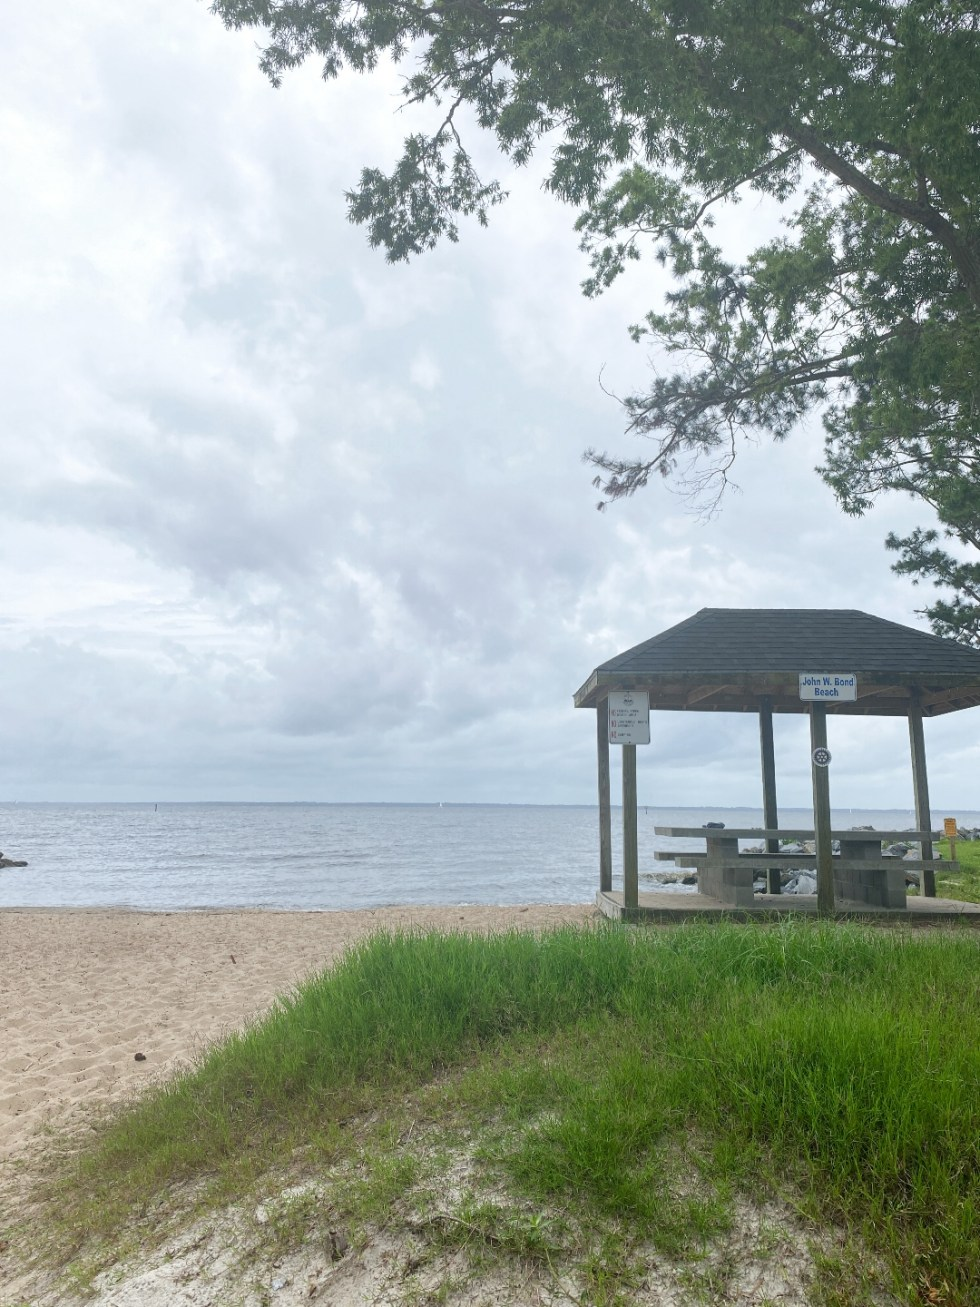 What to Do in Oriental, NC - I'm Fixin' To - @imfixintoblog | Things to do in Oriental NC by popular NC travel blog, I'm Fixin' To: image of John W. Bond beach.